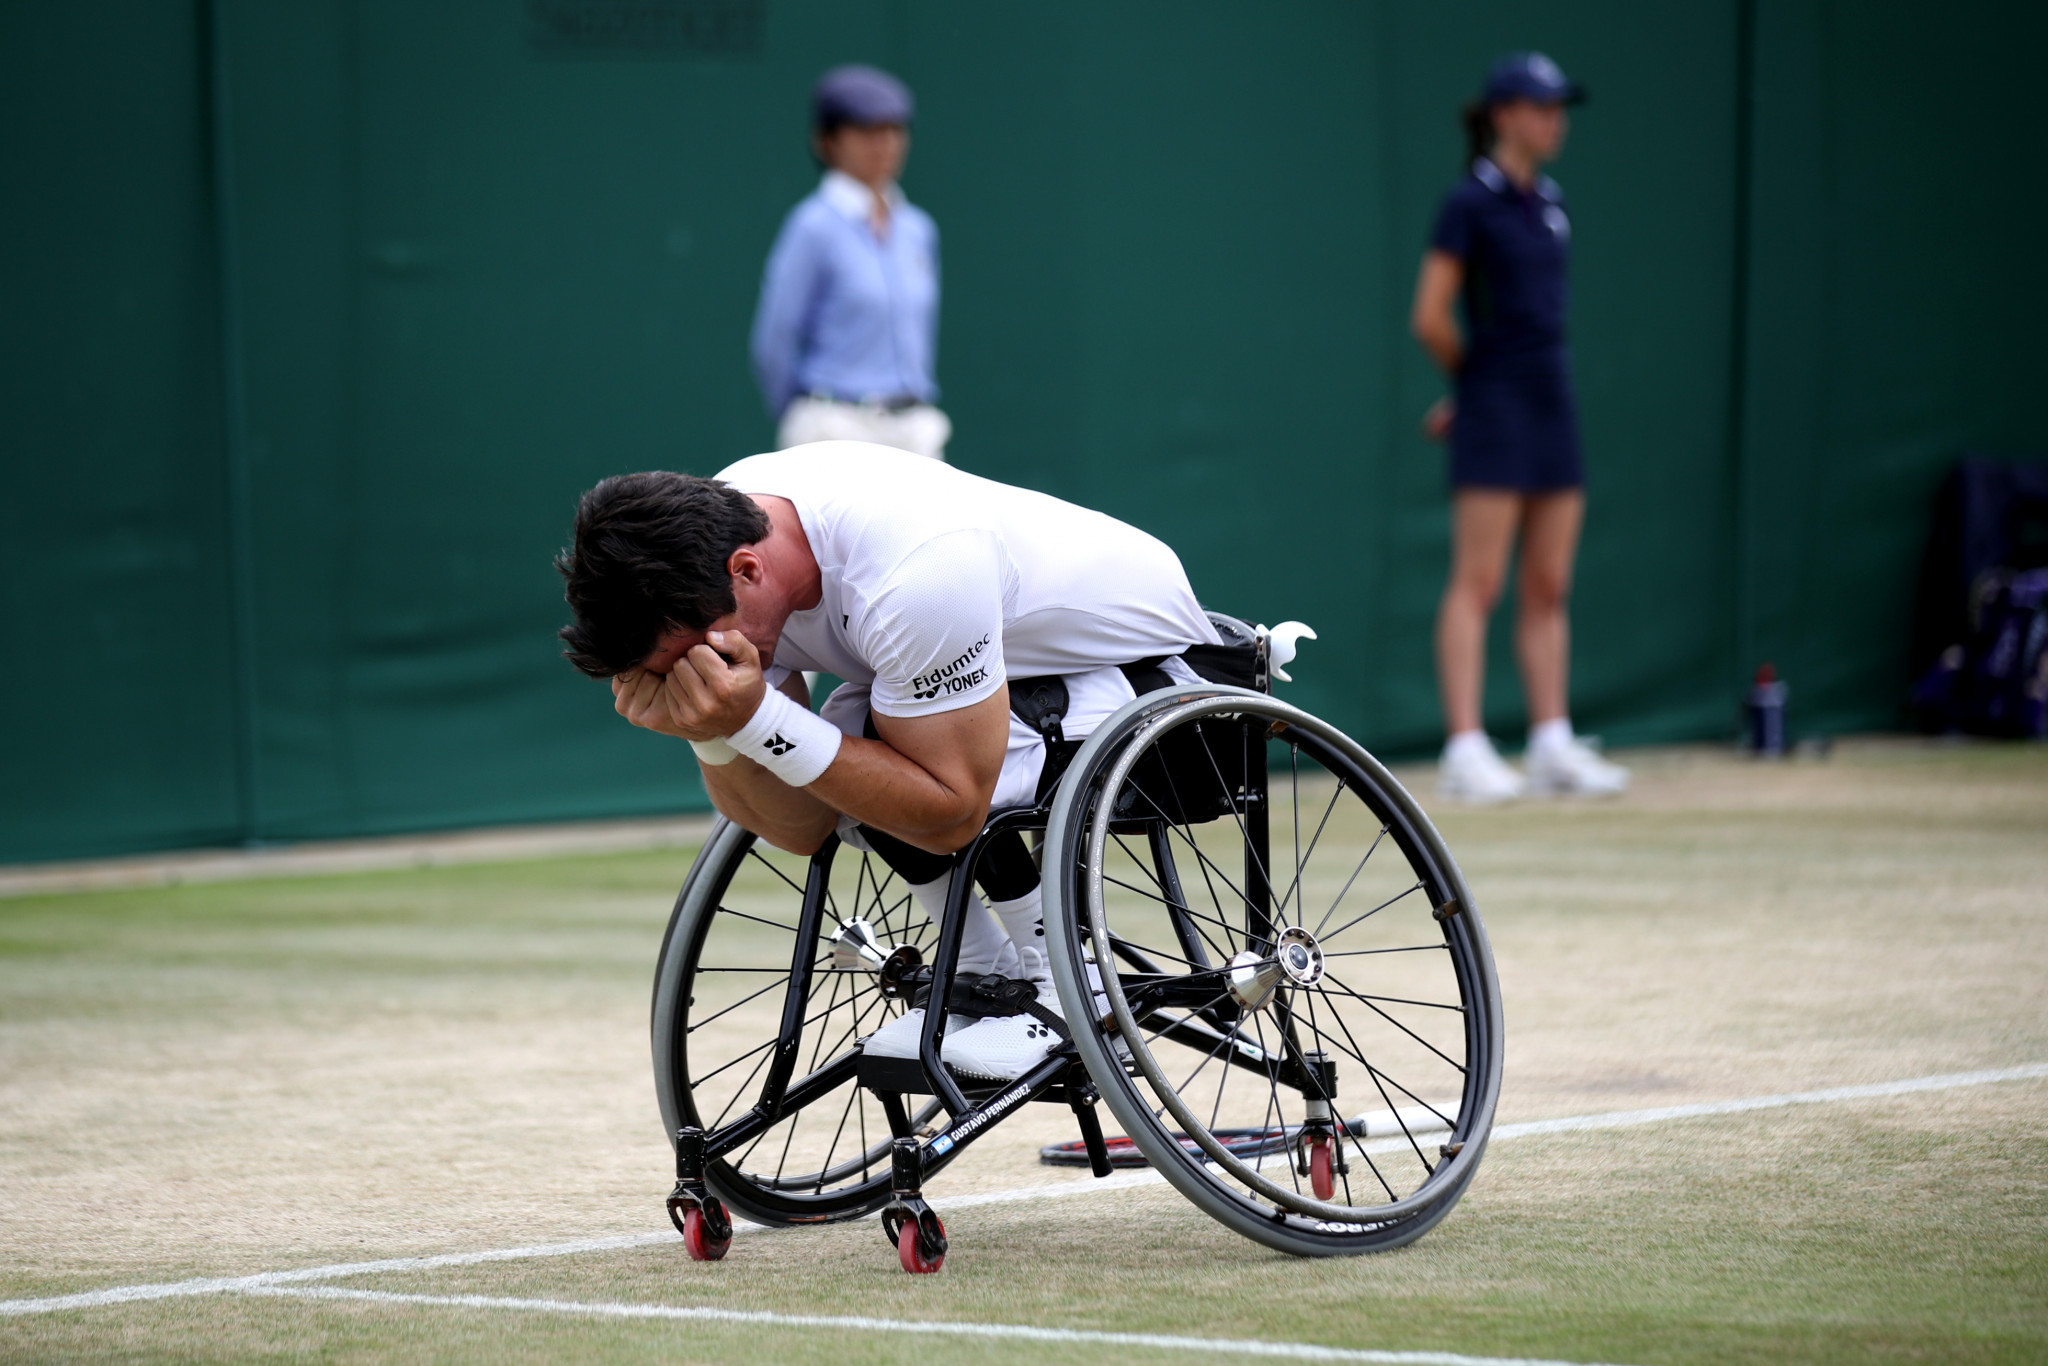 Fernández wins third Grand Slam of 2019 after fightback against Kunieda